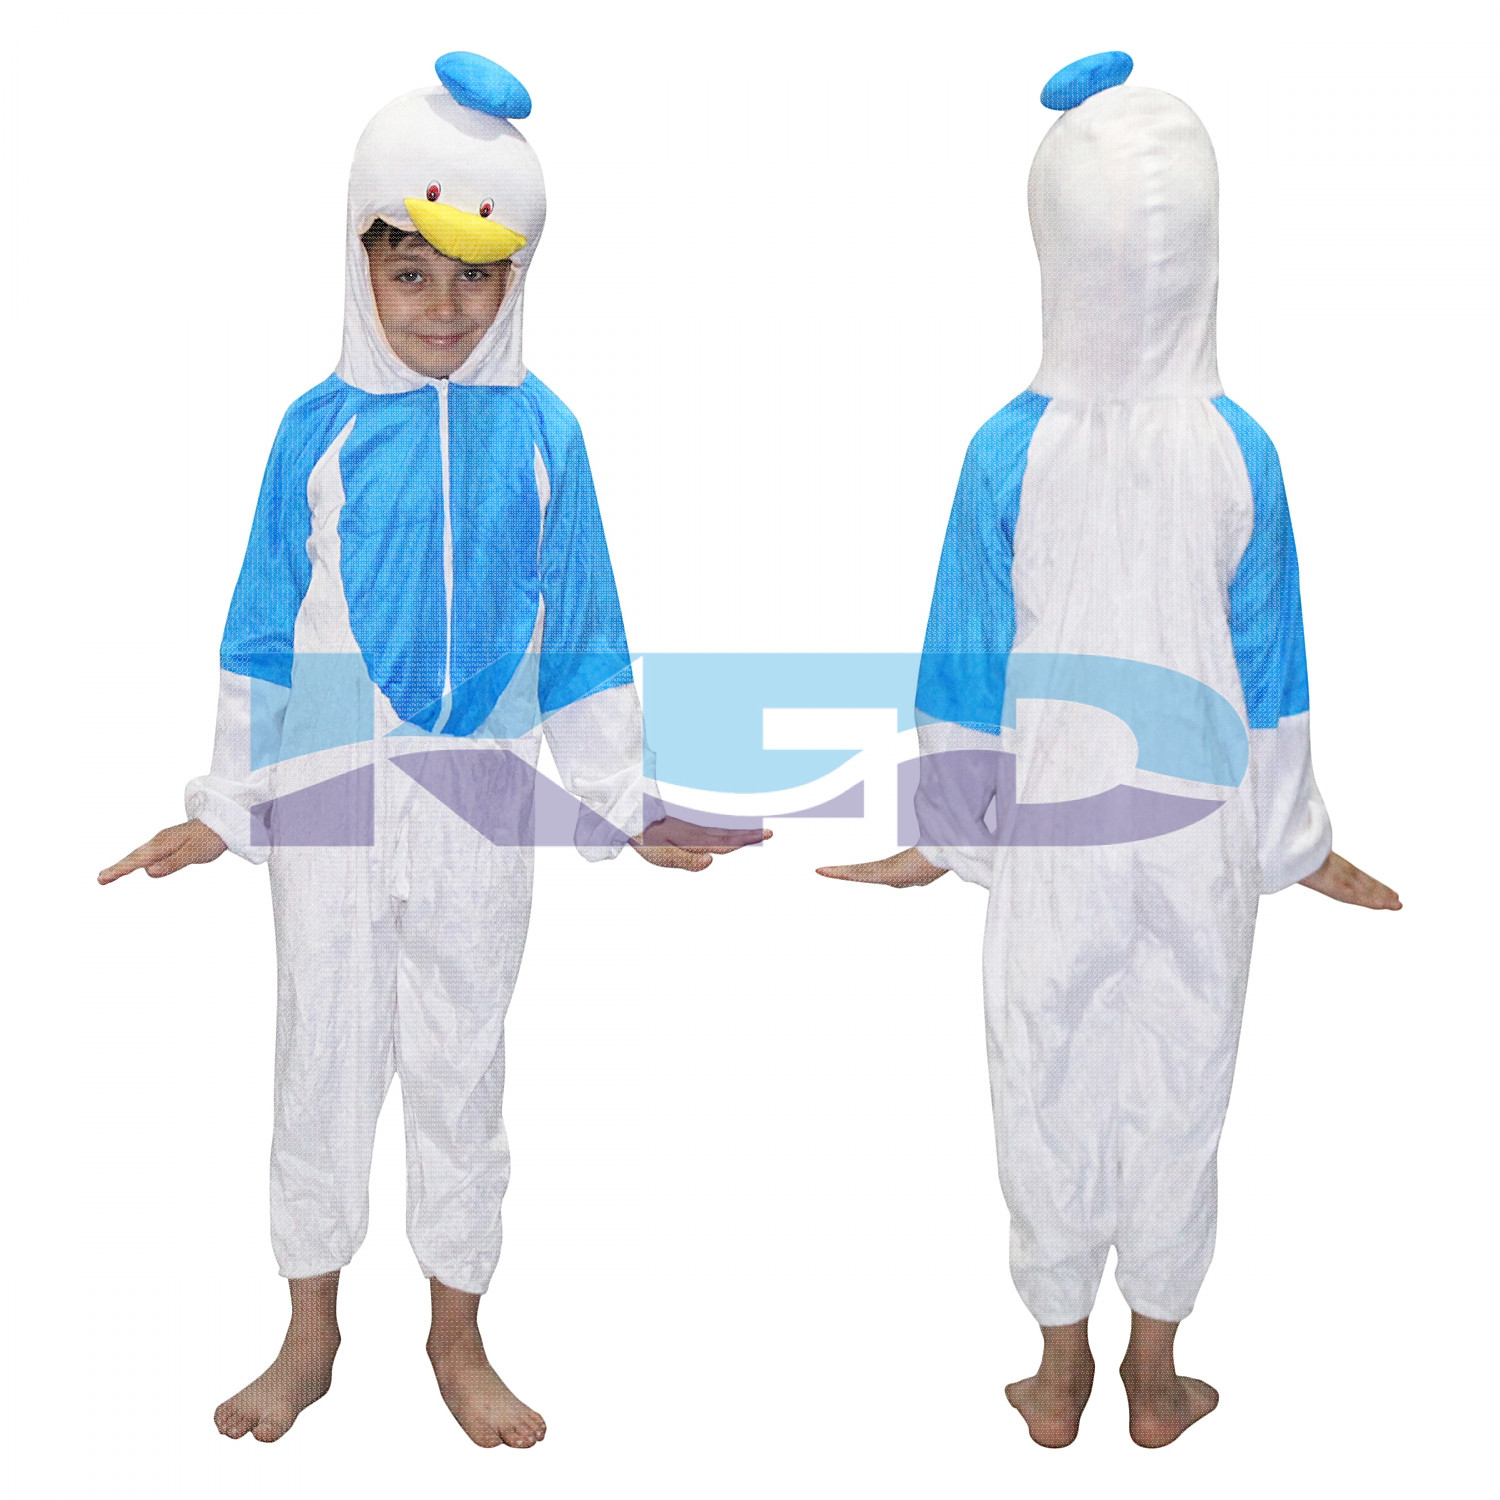 Donal Duck Fancy dress for kids,Diseny Cartoon Costume for Annual function/Theme Party/Stage Shows/Competition/Birthday Party Dress